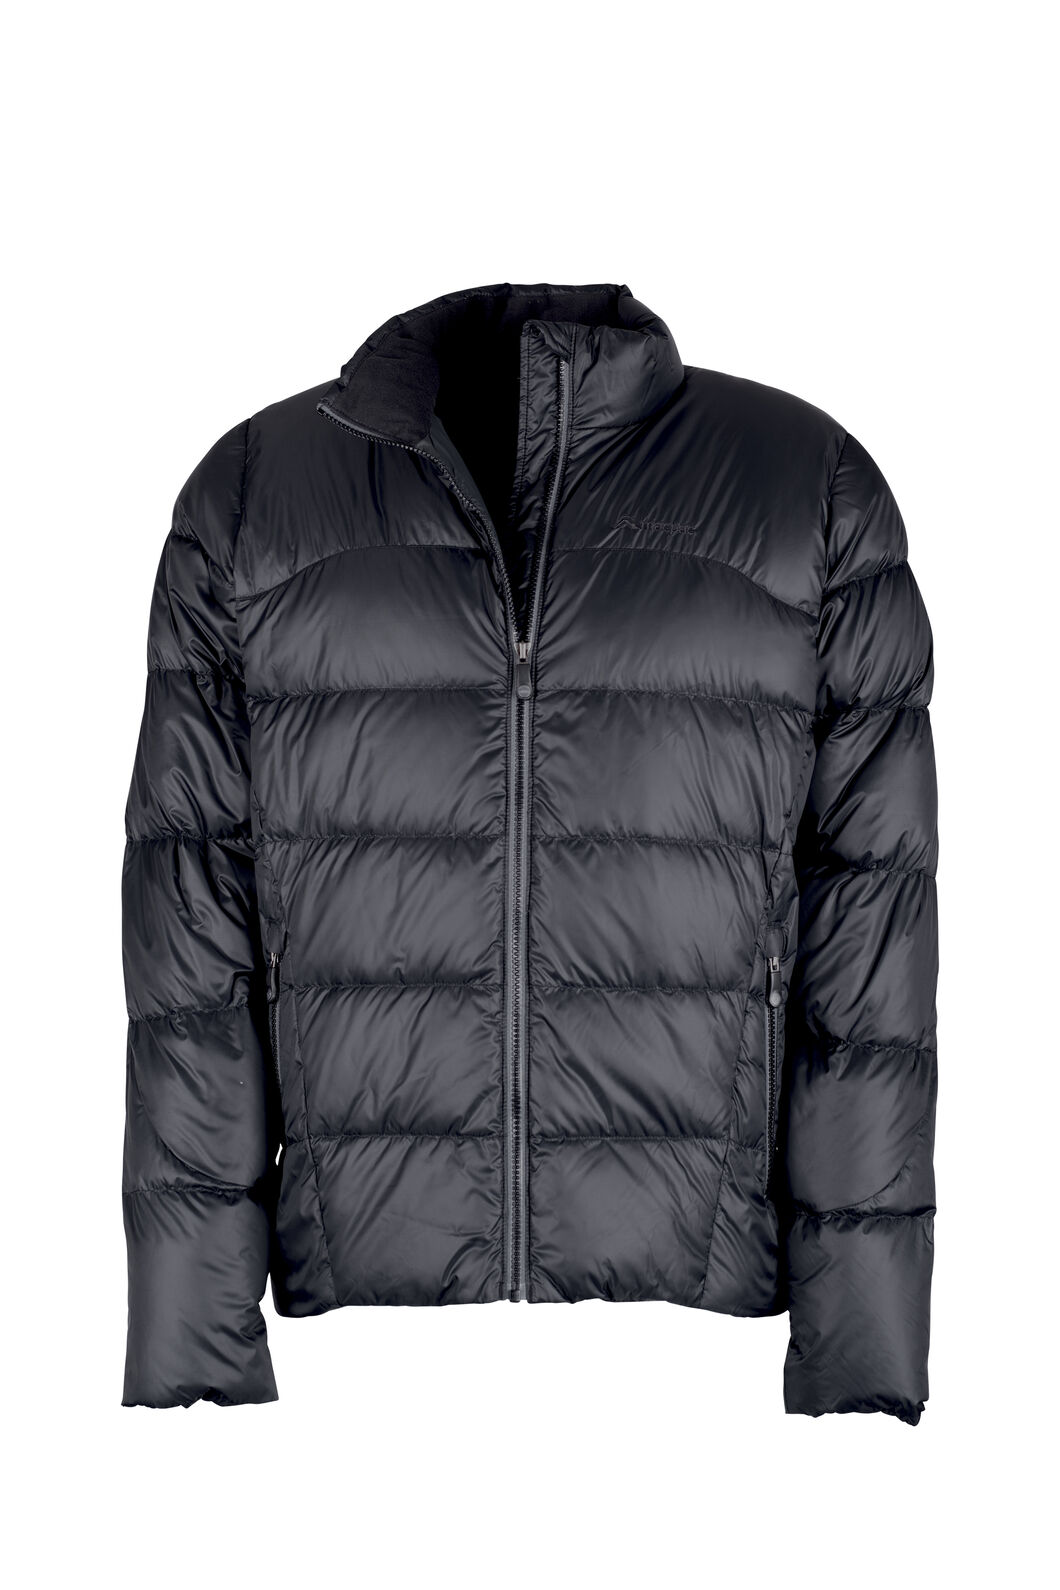 Macpac Sundowner HyperDRY™ Down Jacket - Men's, Black, hi-res